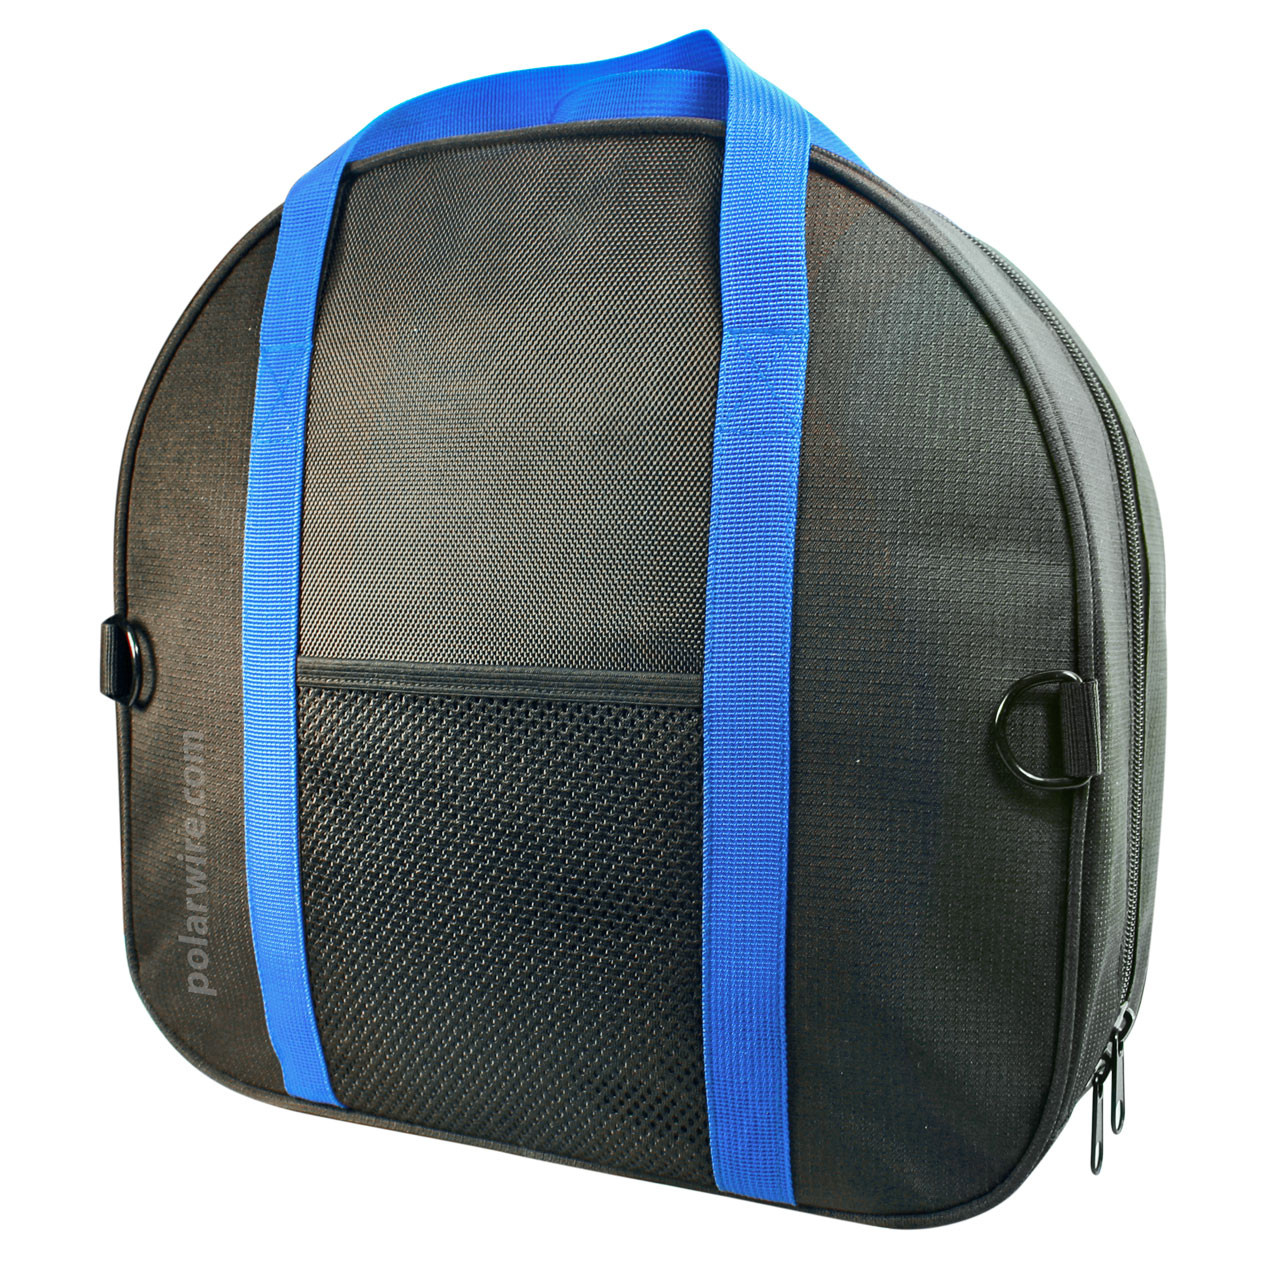 Includes a durable nylon canvas jumper cable bag for carrying and storing with full zipper and side pocket